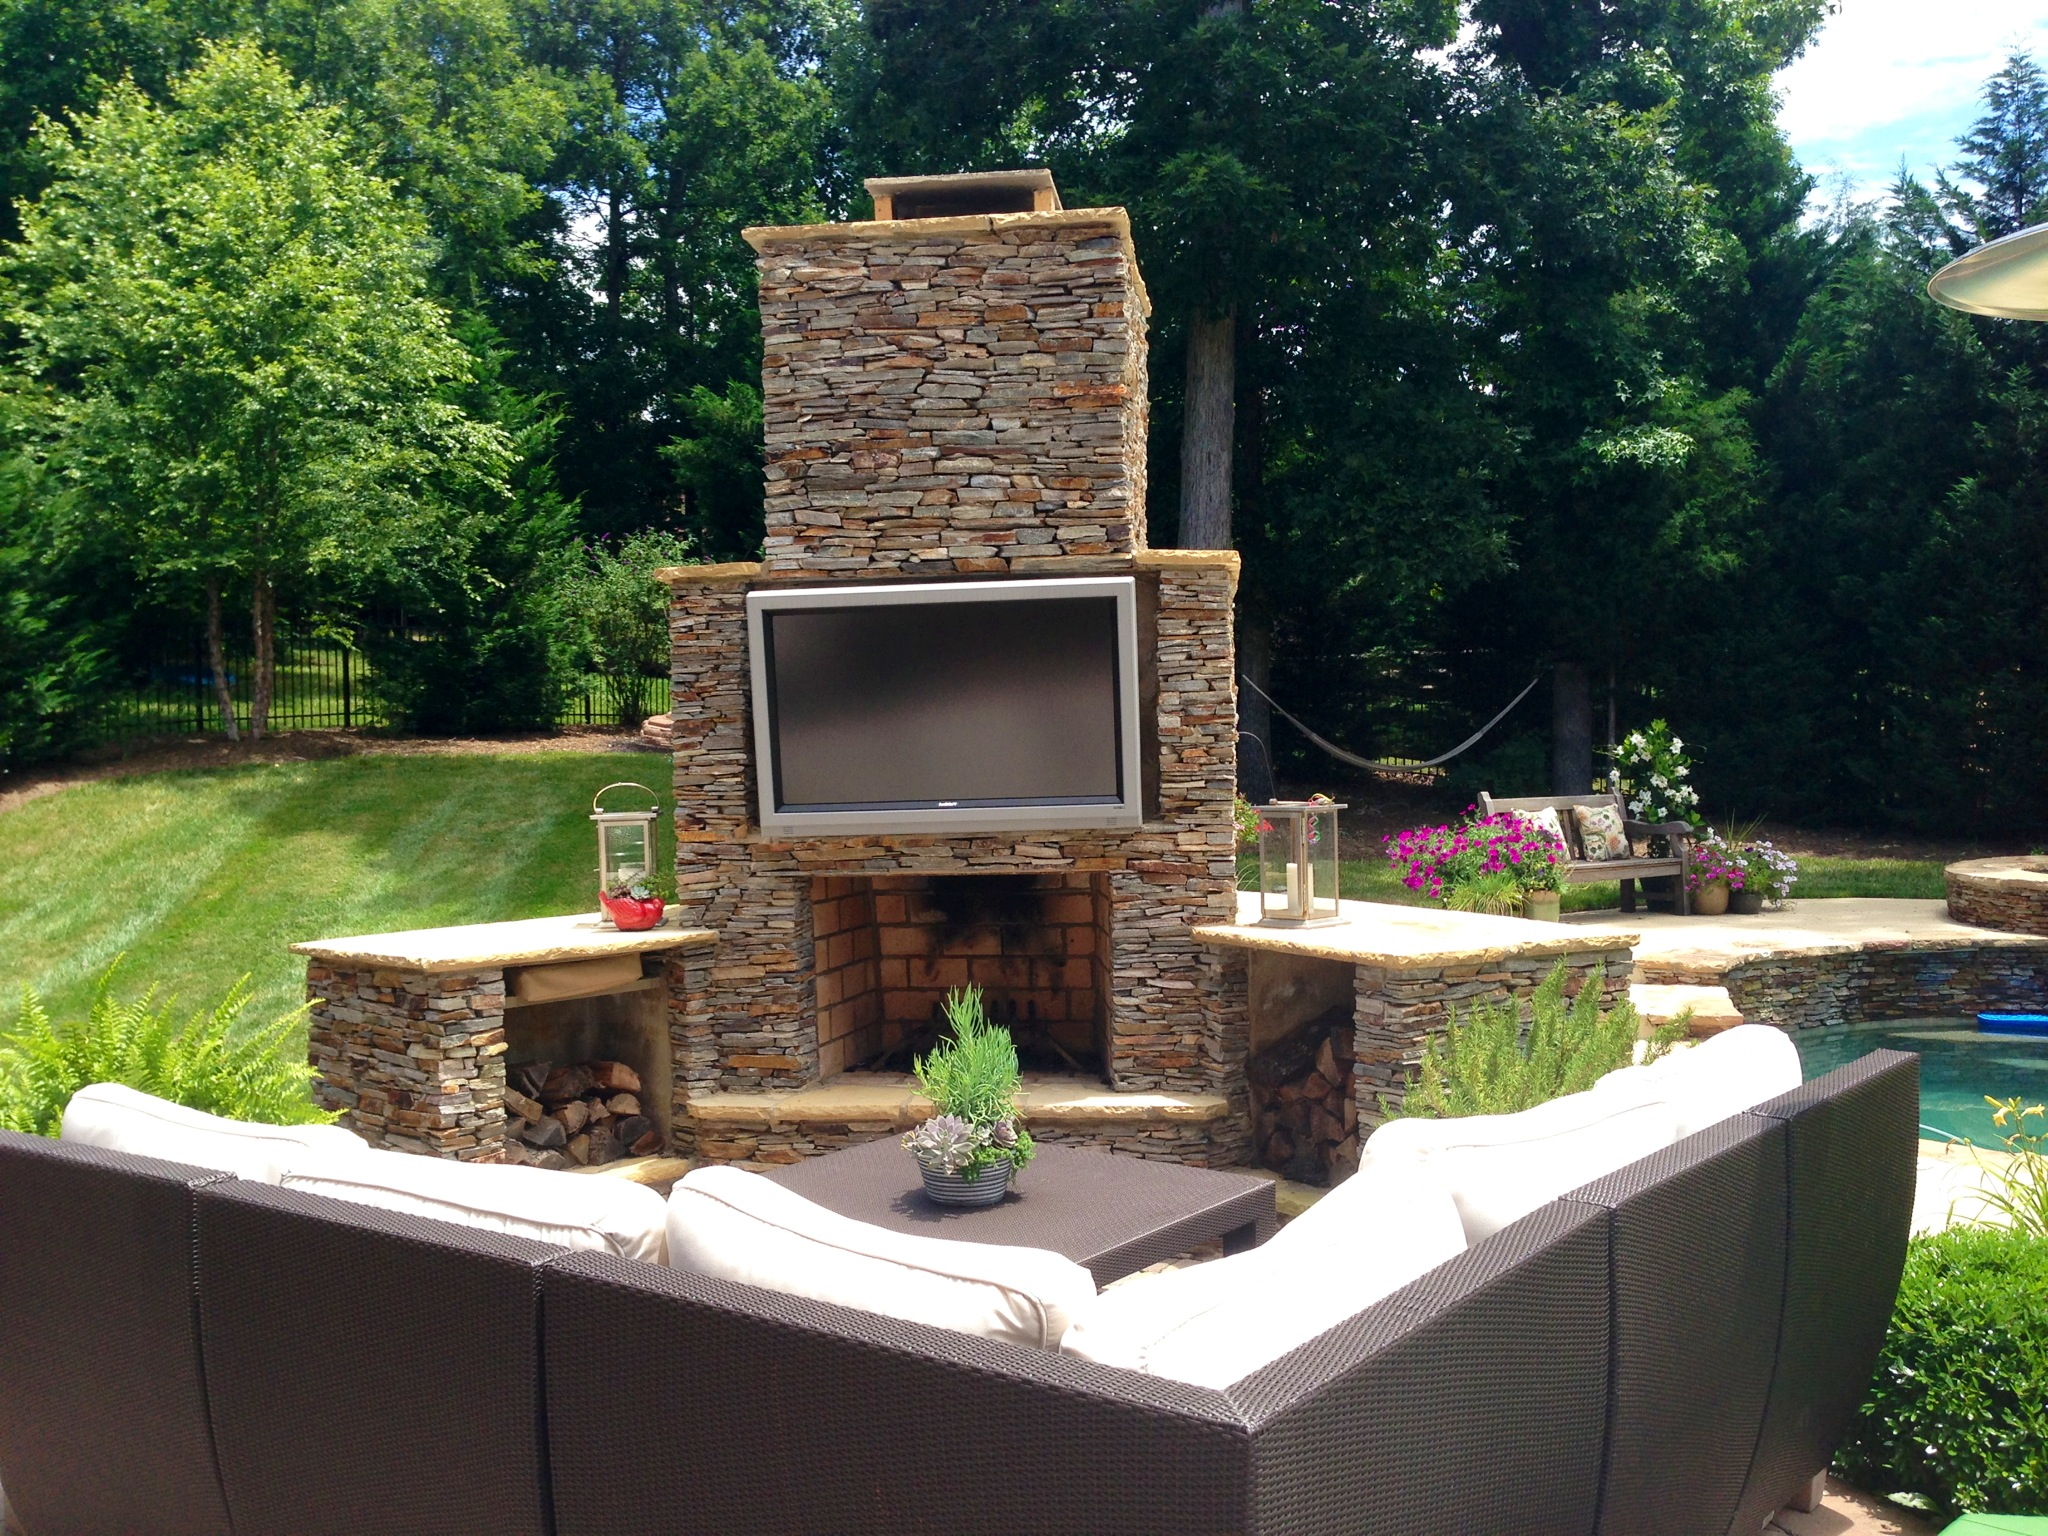 patio designs with fireplace covered patio with fireplace with the brick matching whats already on the - Patio Fireplace Designs